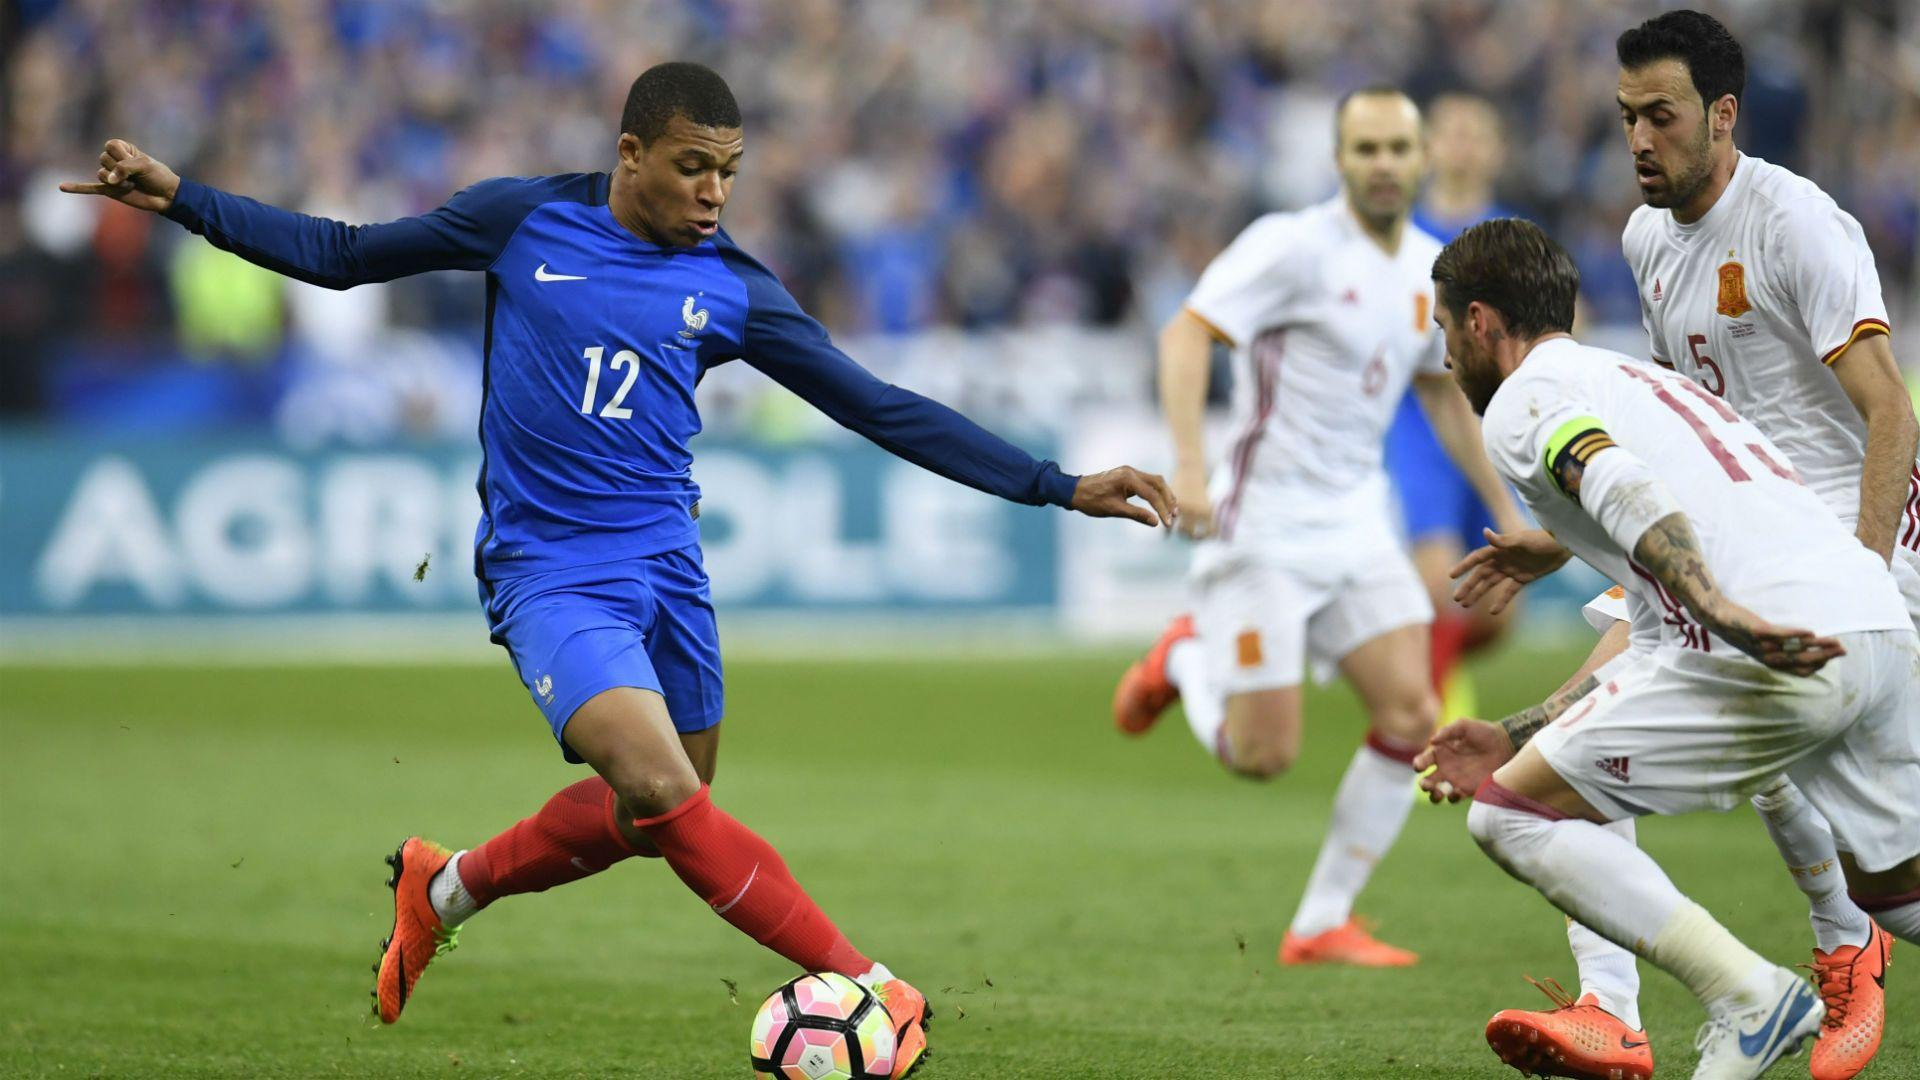 Kylian Mbappe to be included in France U20 squad | Goal.com